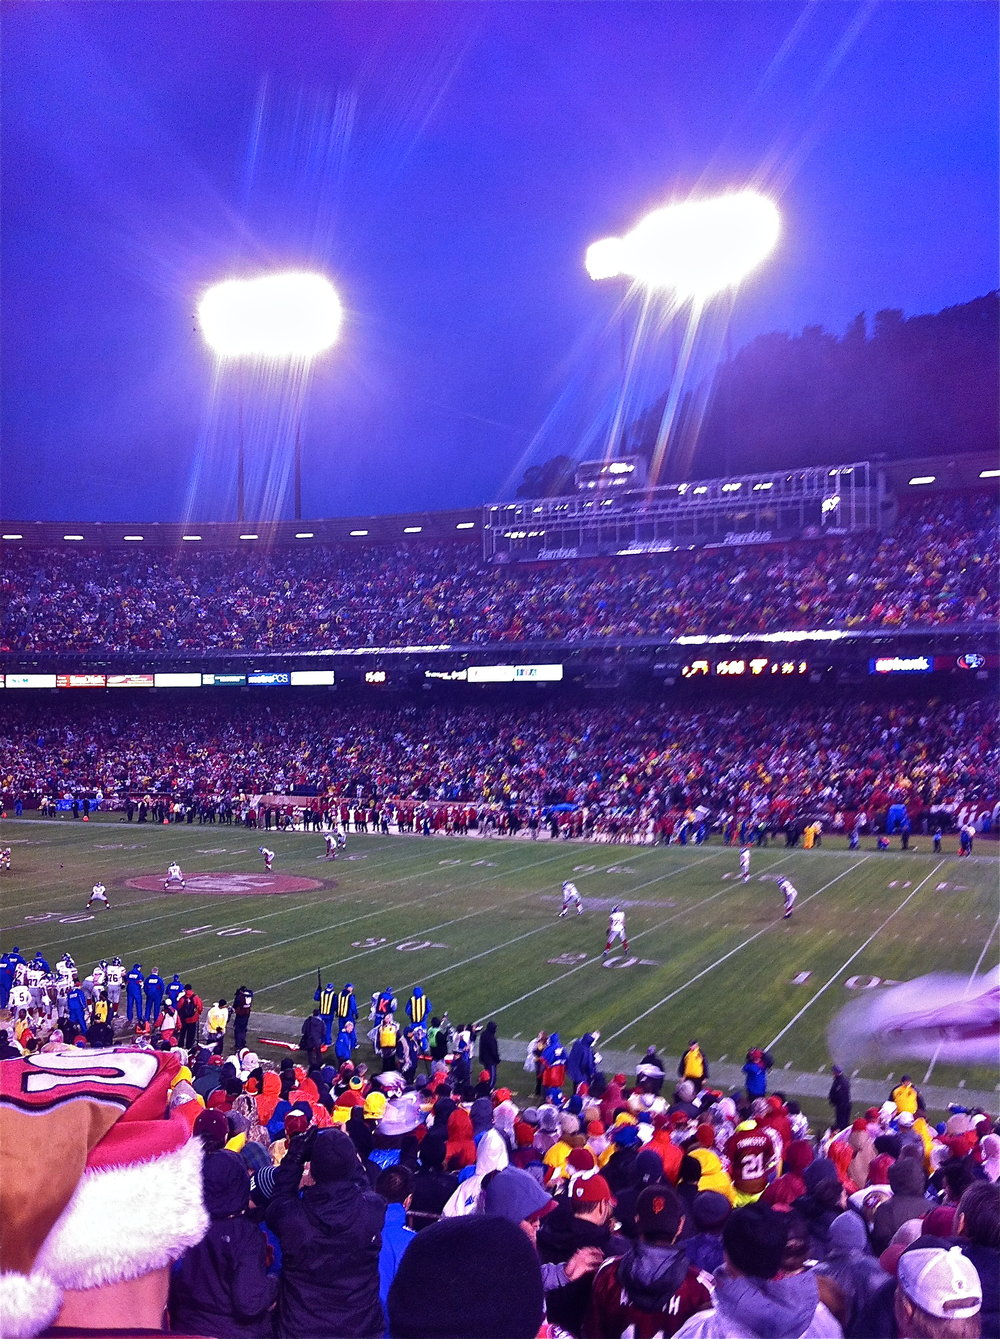 Cold and Miserable at Candlestick